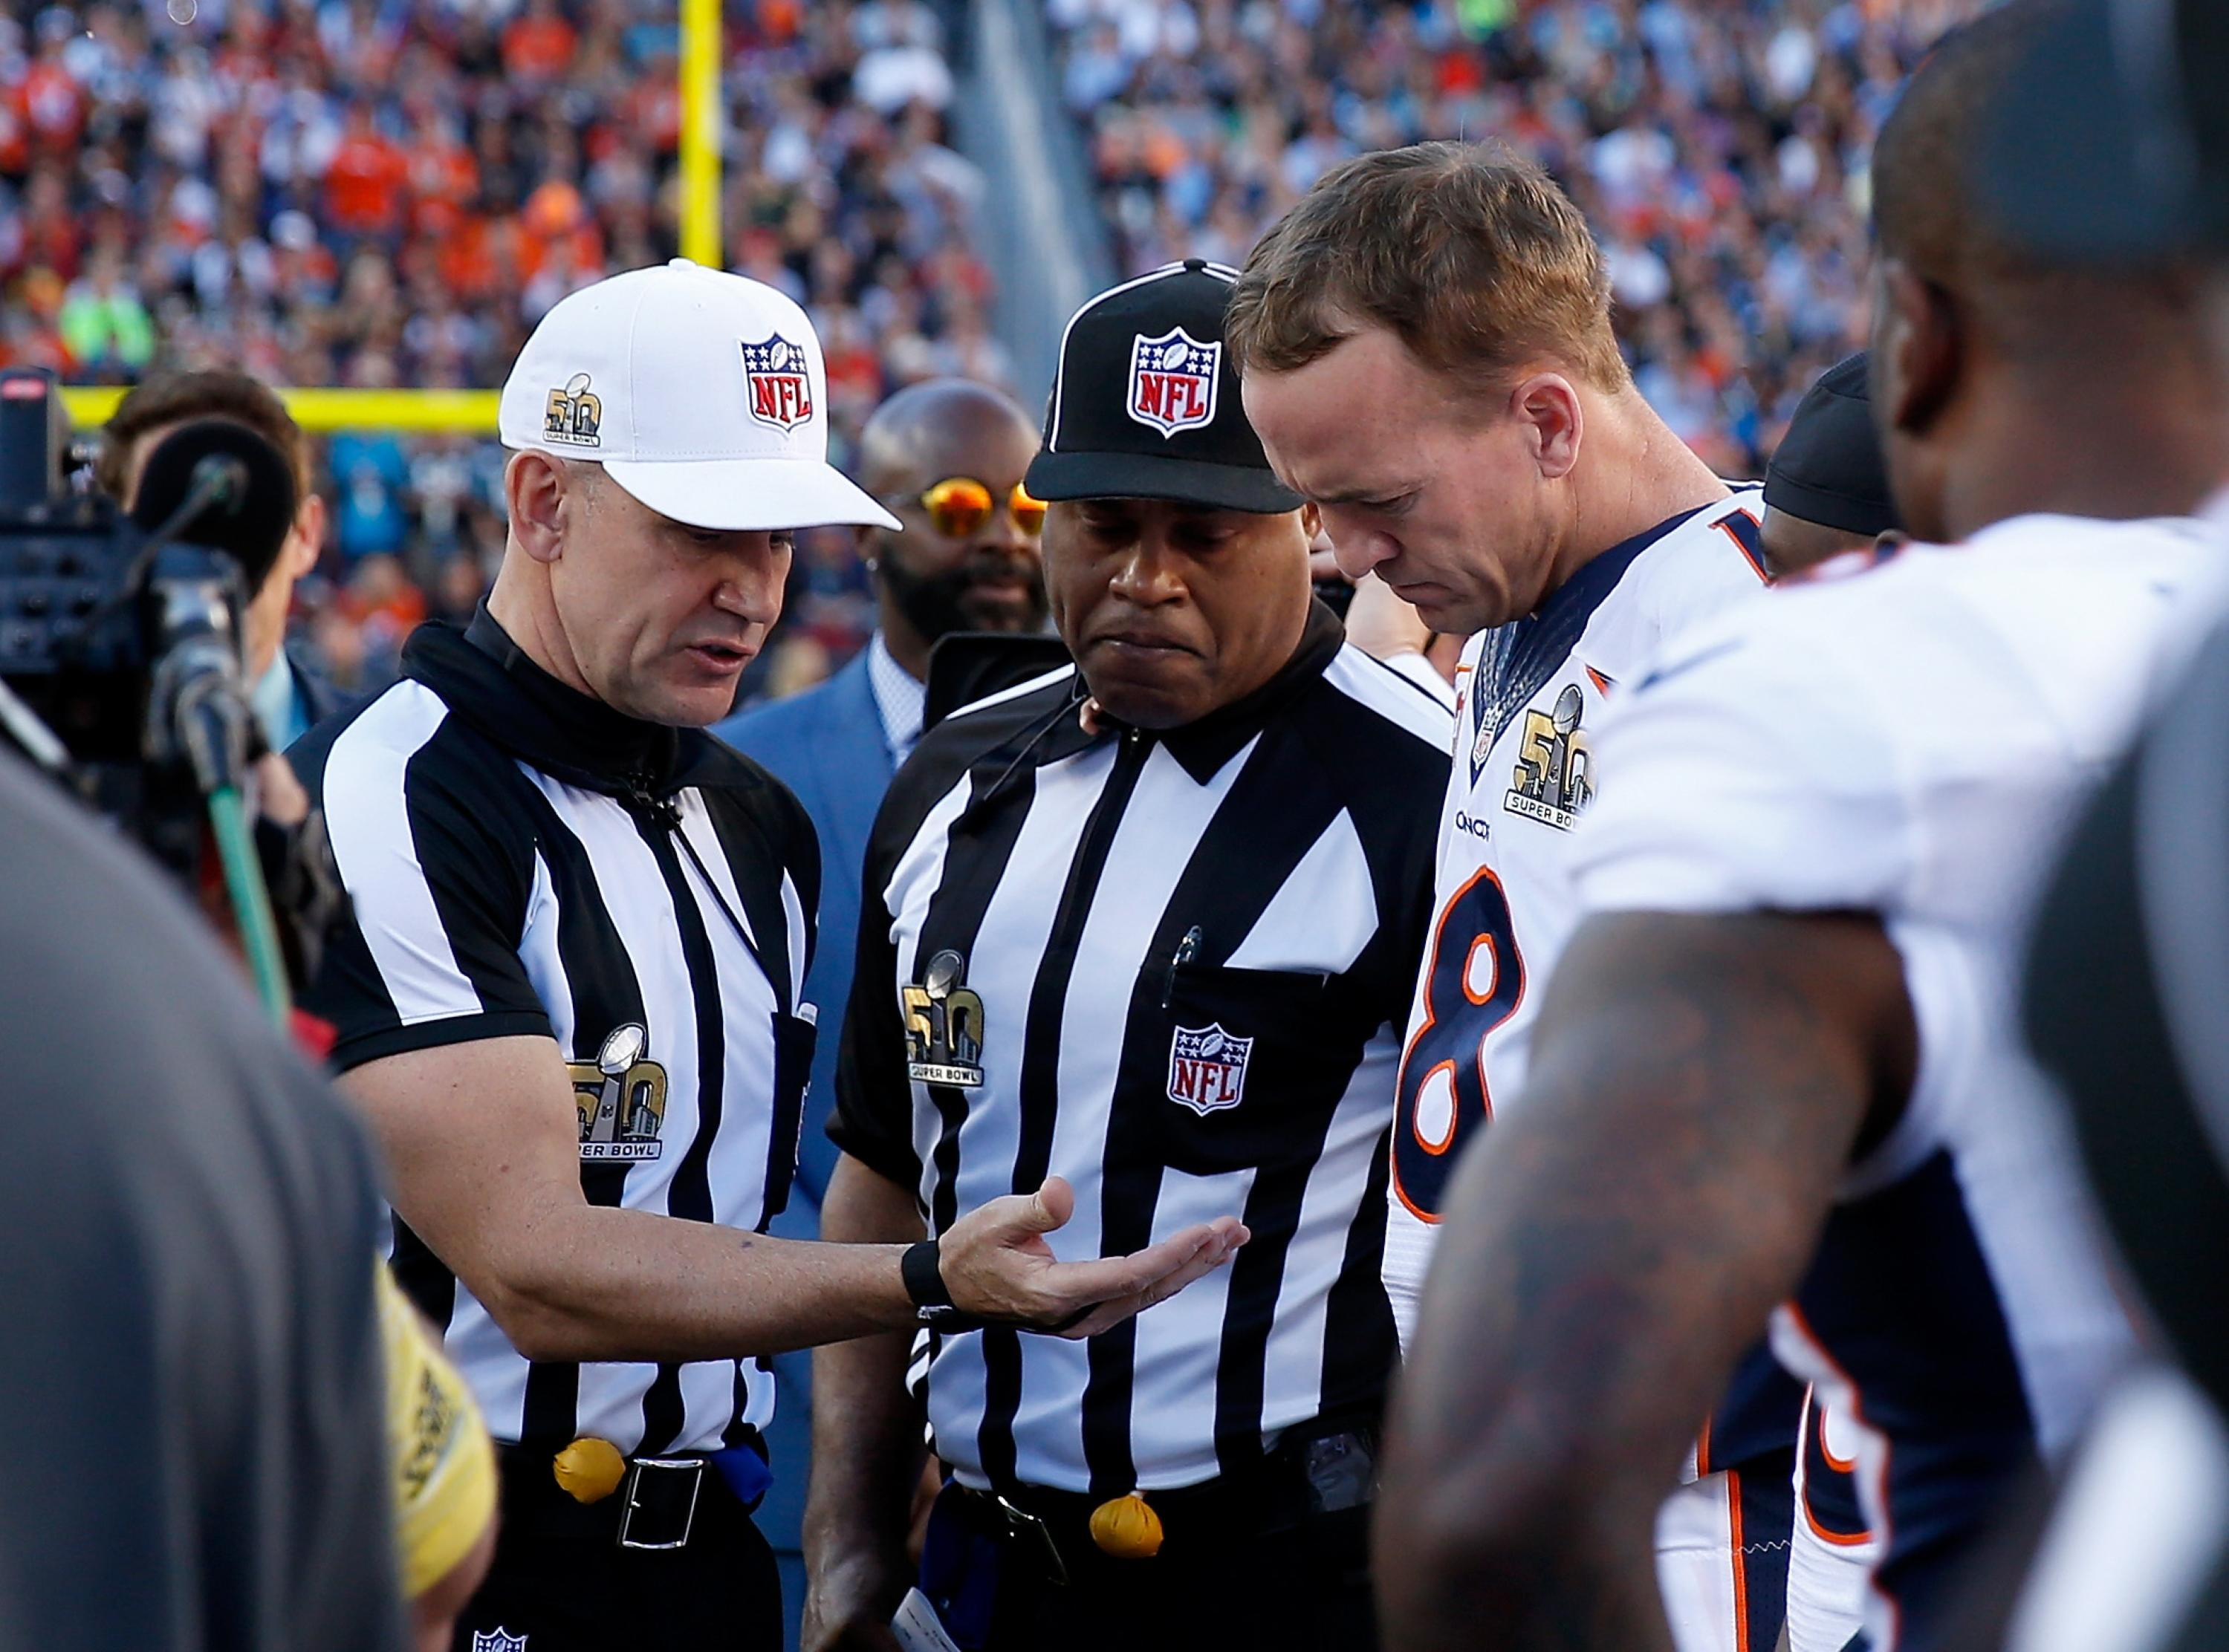 Meet Super Bowl 50 referee Clete Blakeman